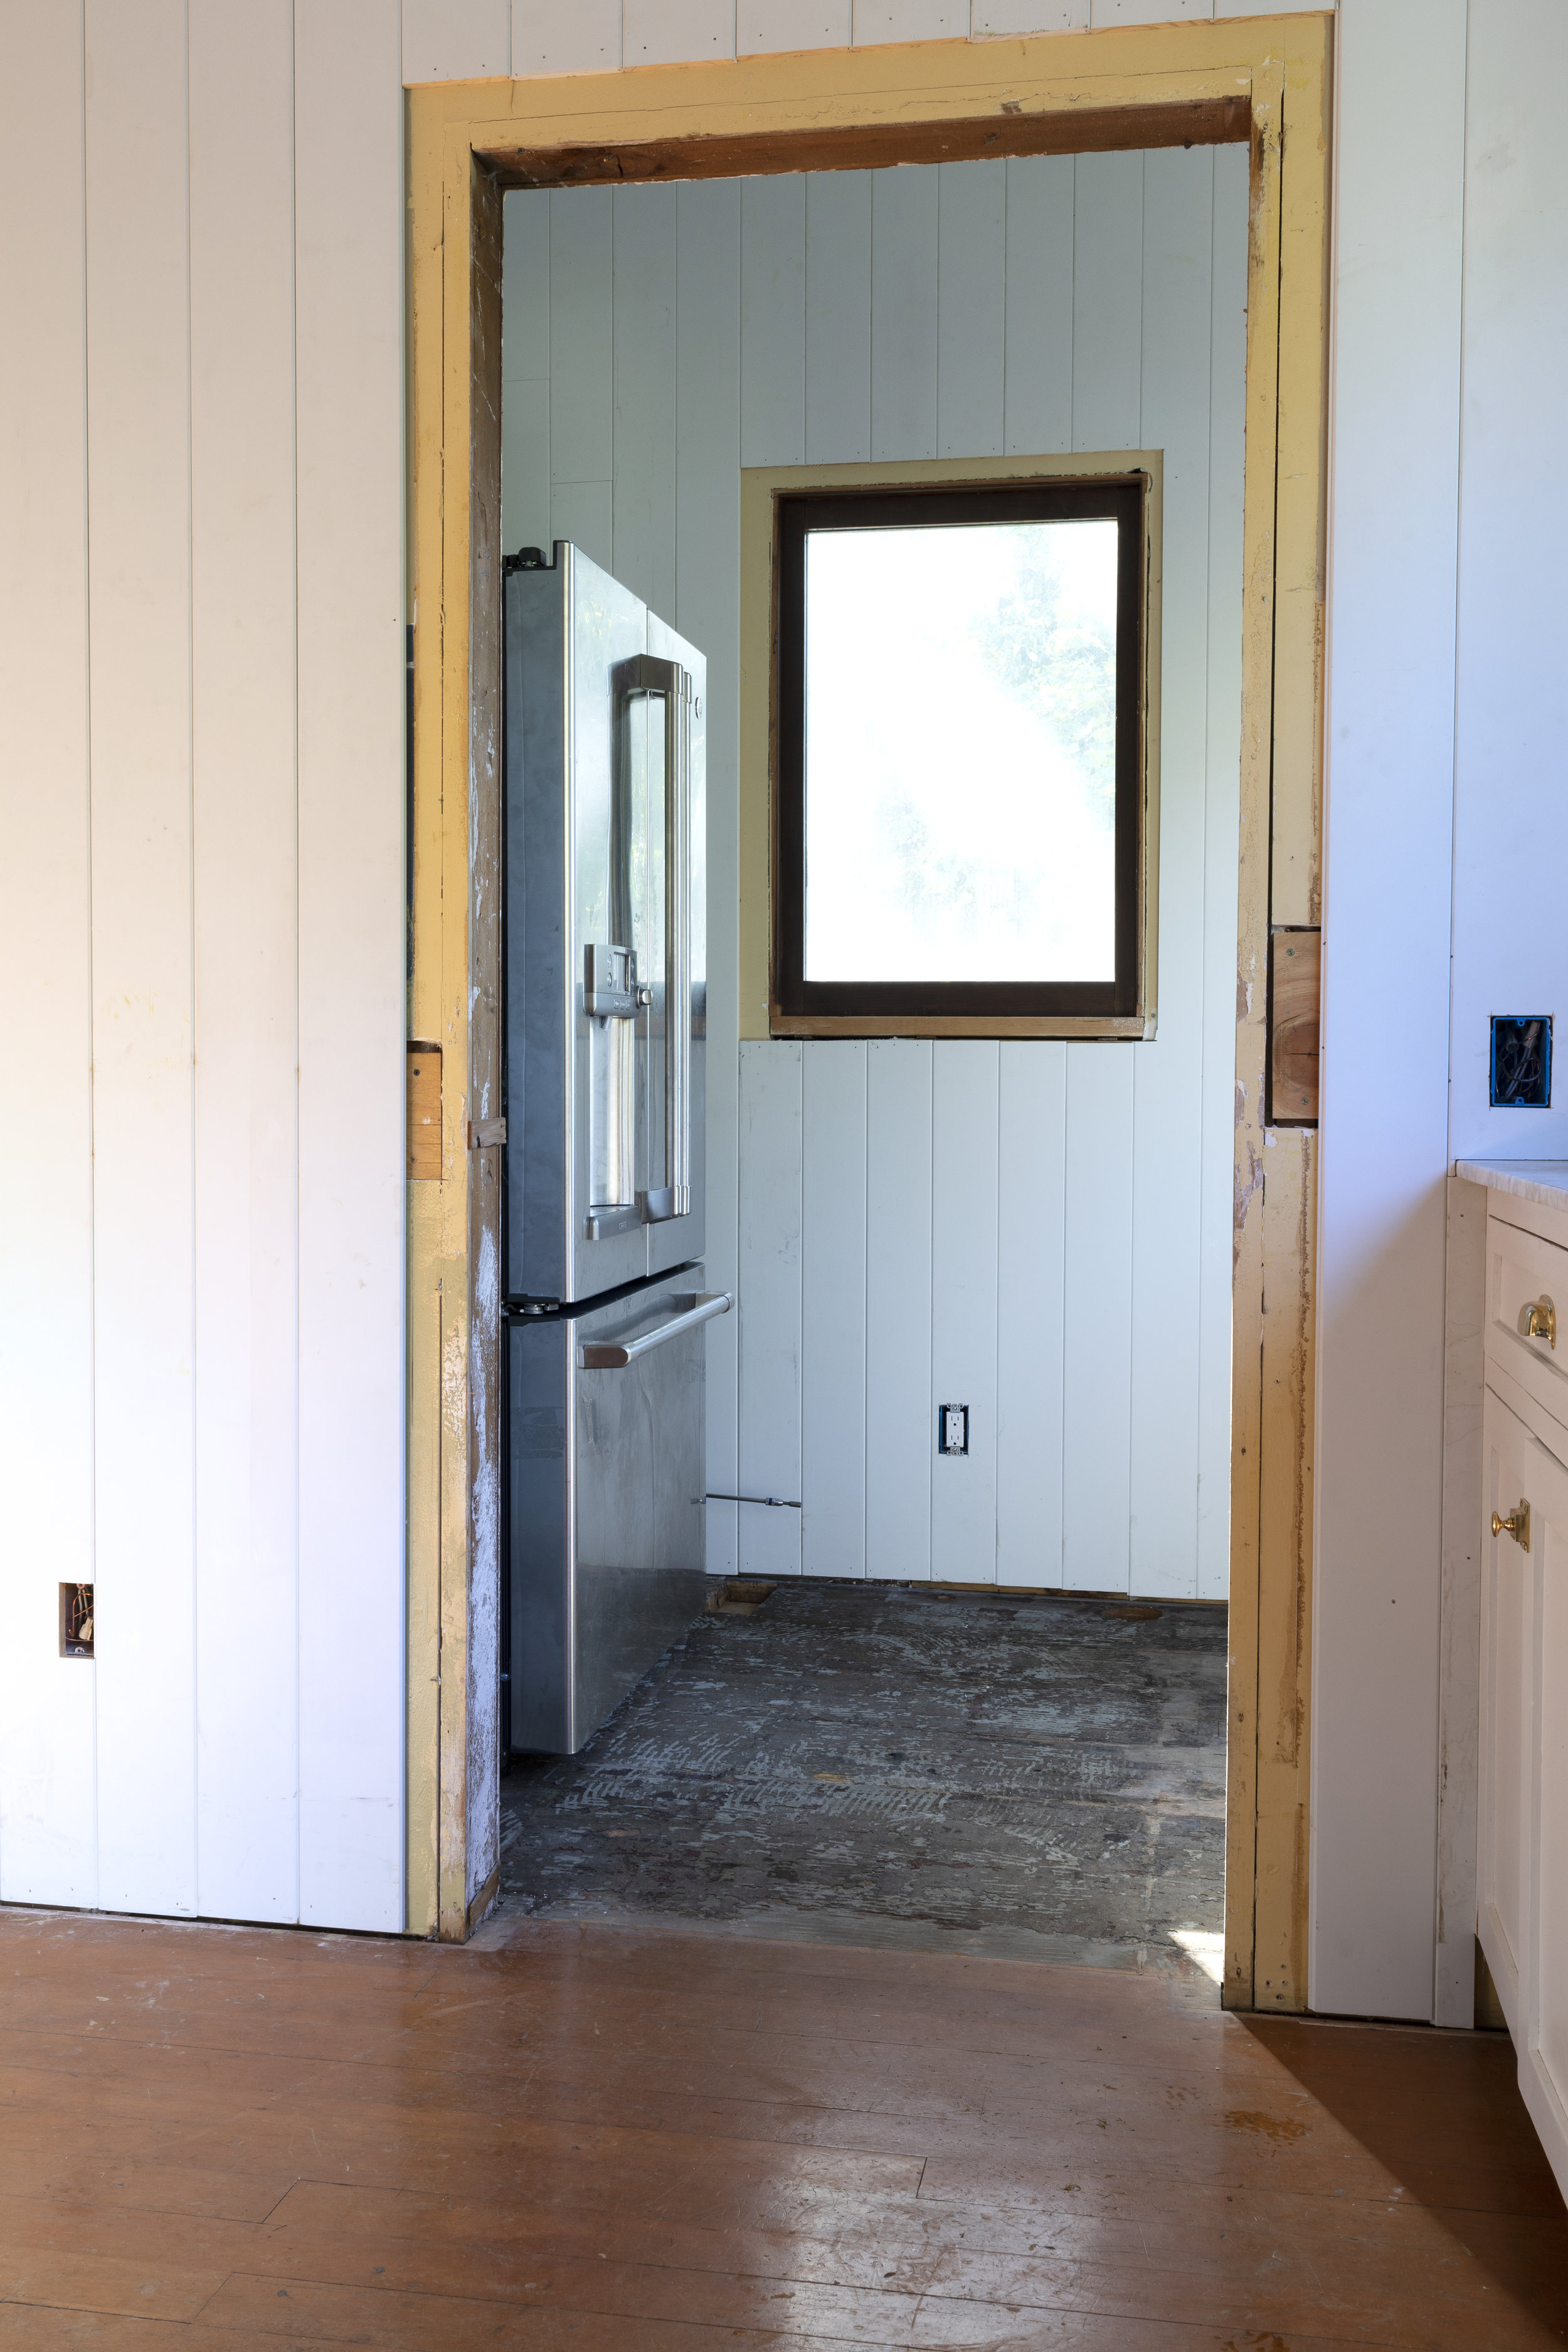 The Grit and Polish - Farmhouse 08-24 Kitchen Update Pantry with Fridge 2.jpg